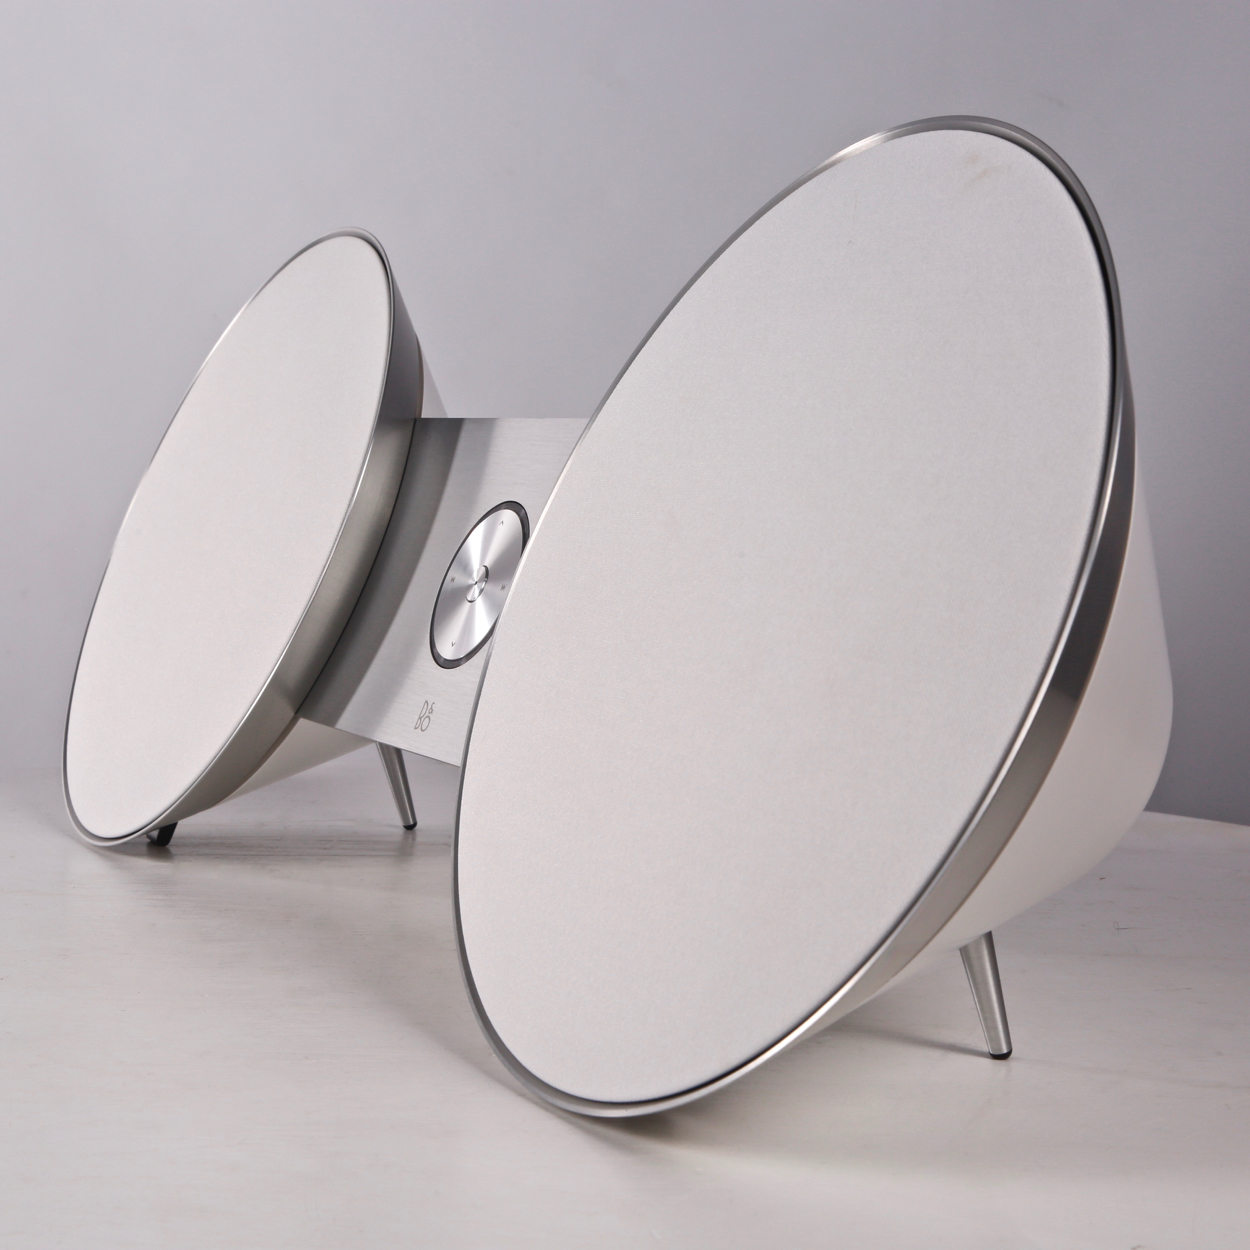 pre-owned BeoPlay A8